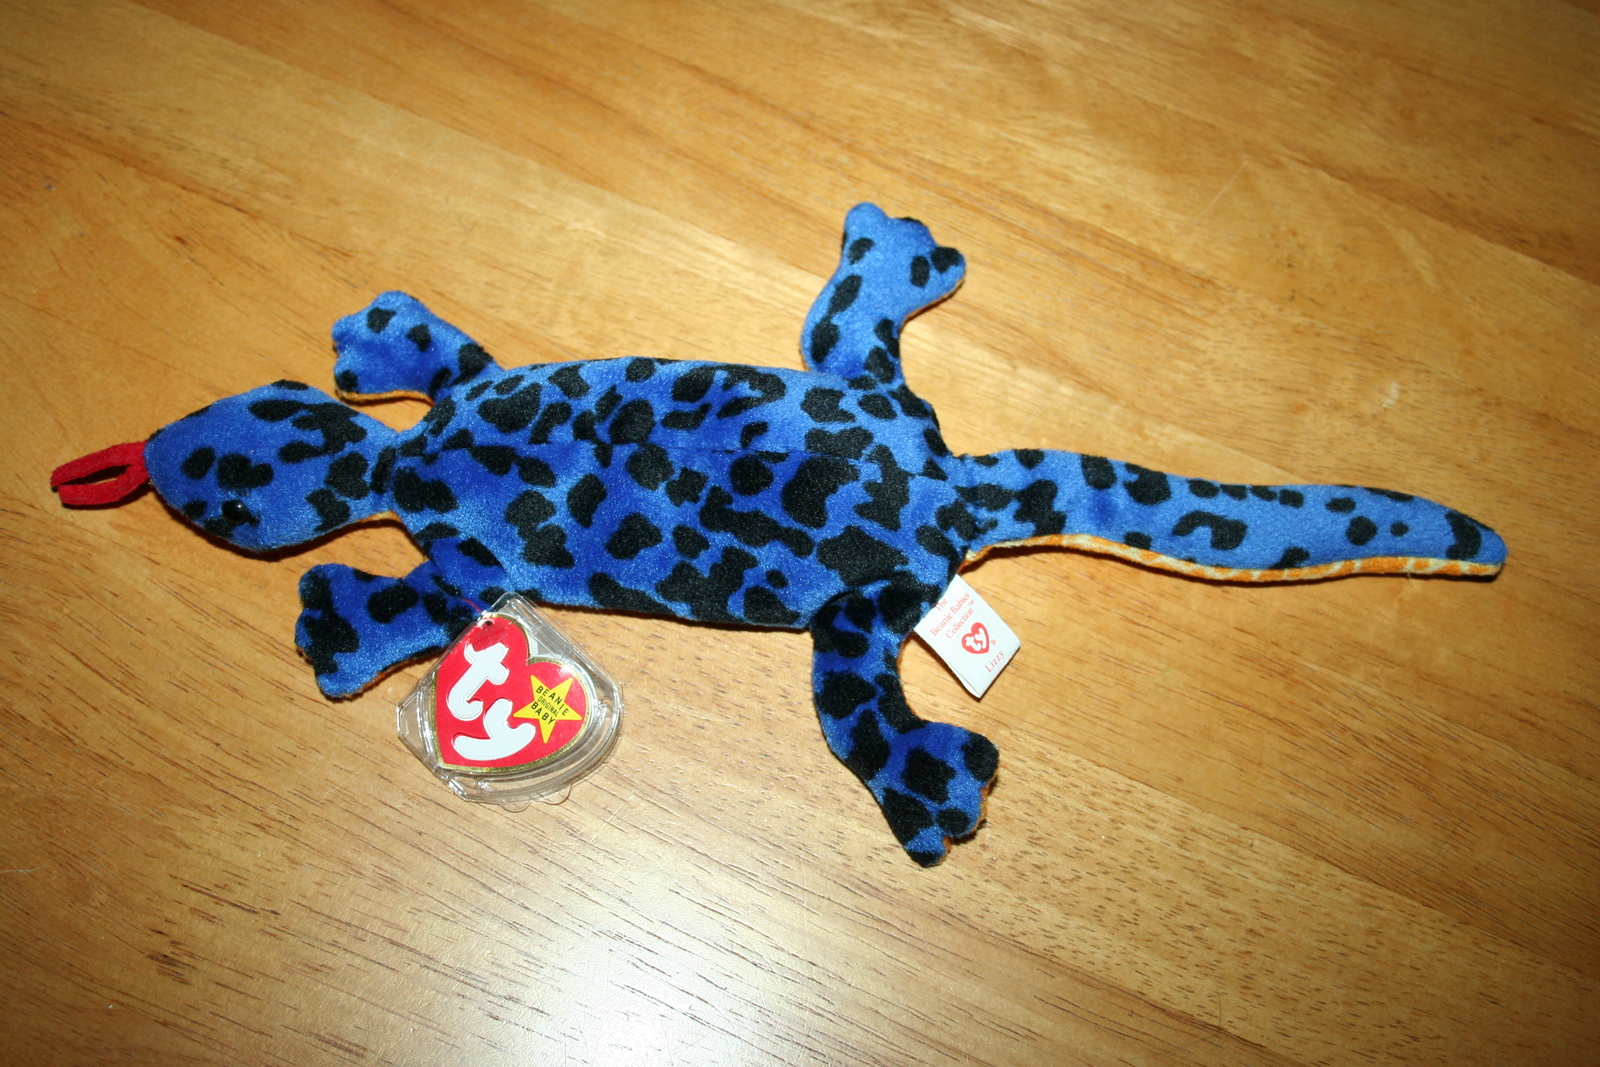 Remarkable Lizzy The Lizard From Ty The Original Beanie And 11 Similar Andrewgaddart Wooden Chair Designs For Living Room Andrewgaddartcom